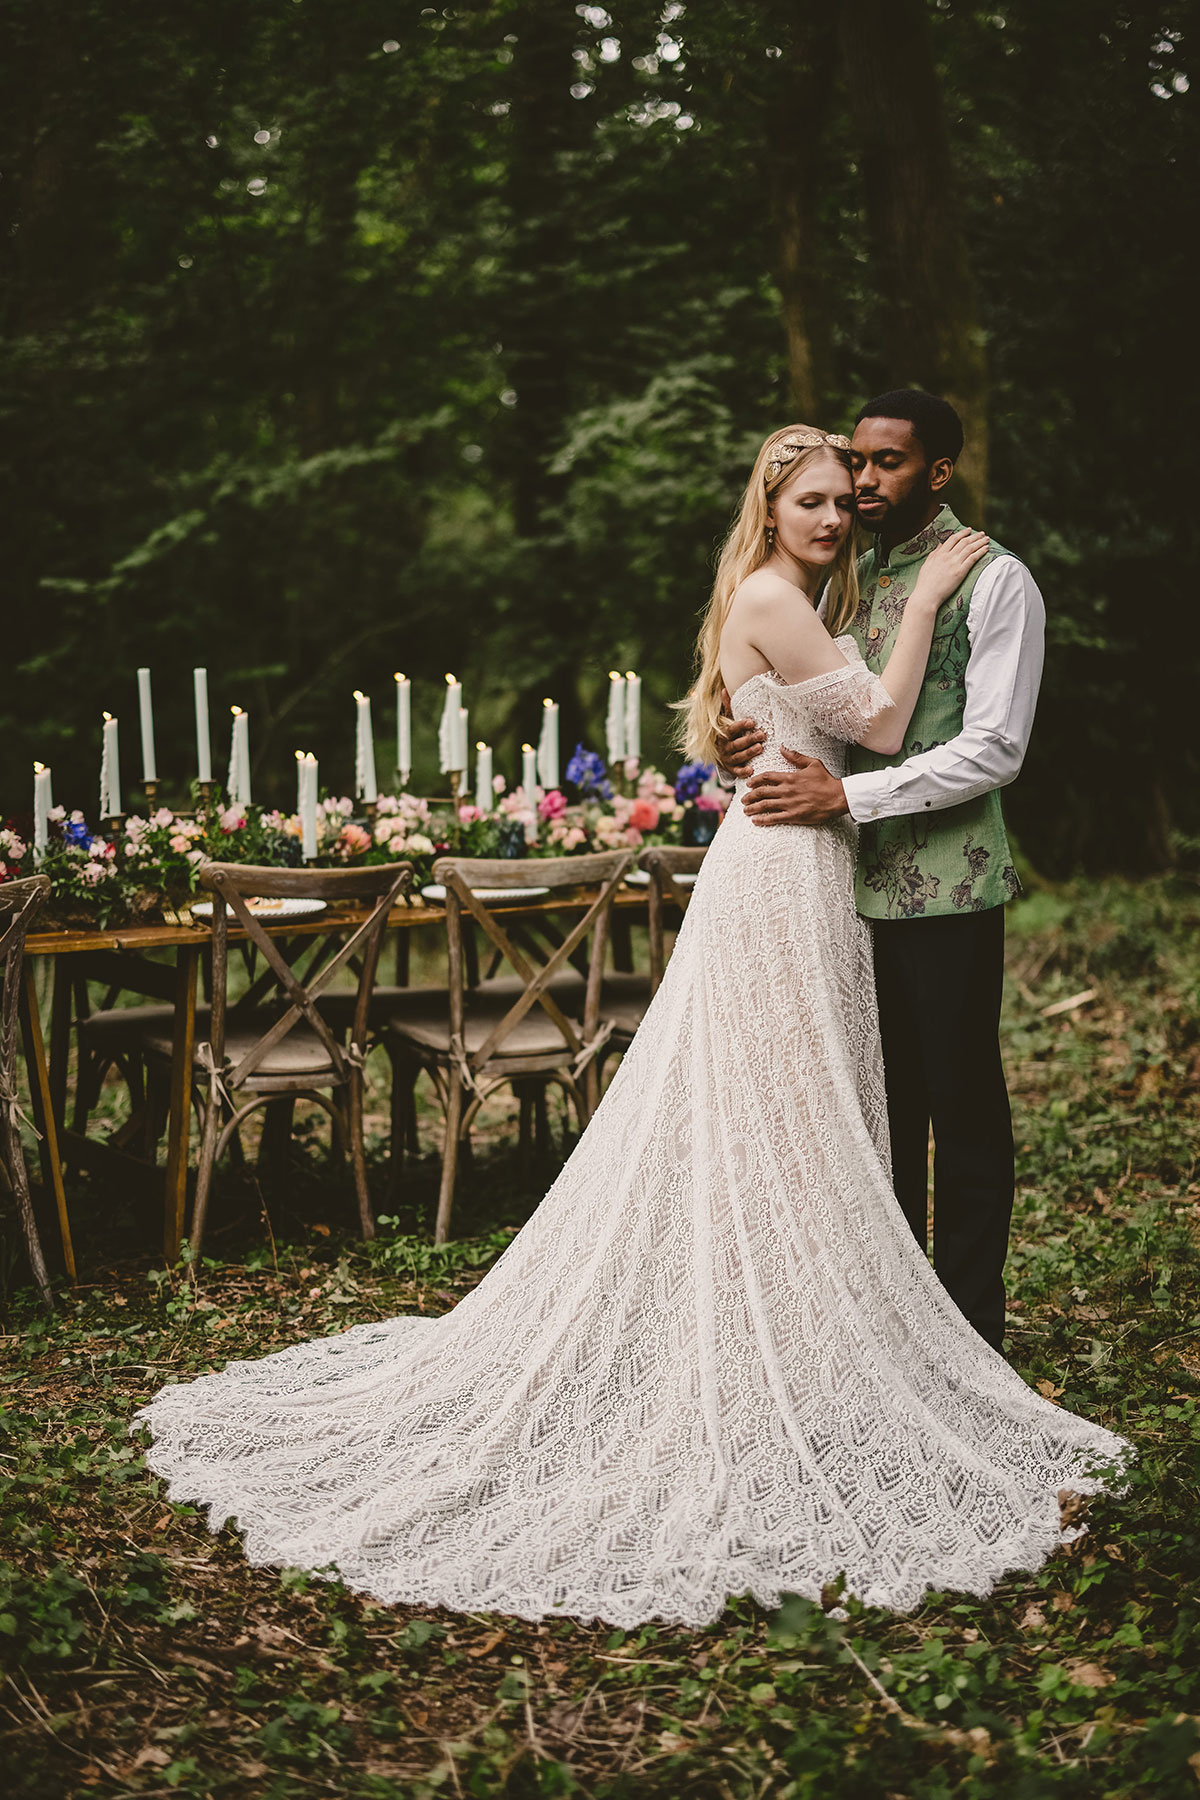 Wedding dress details - Lace gown by Chic Nostalgia called Scarlett